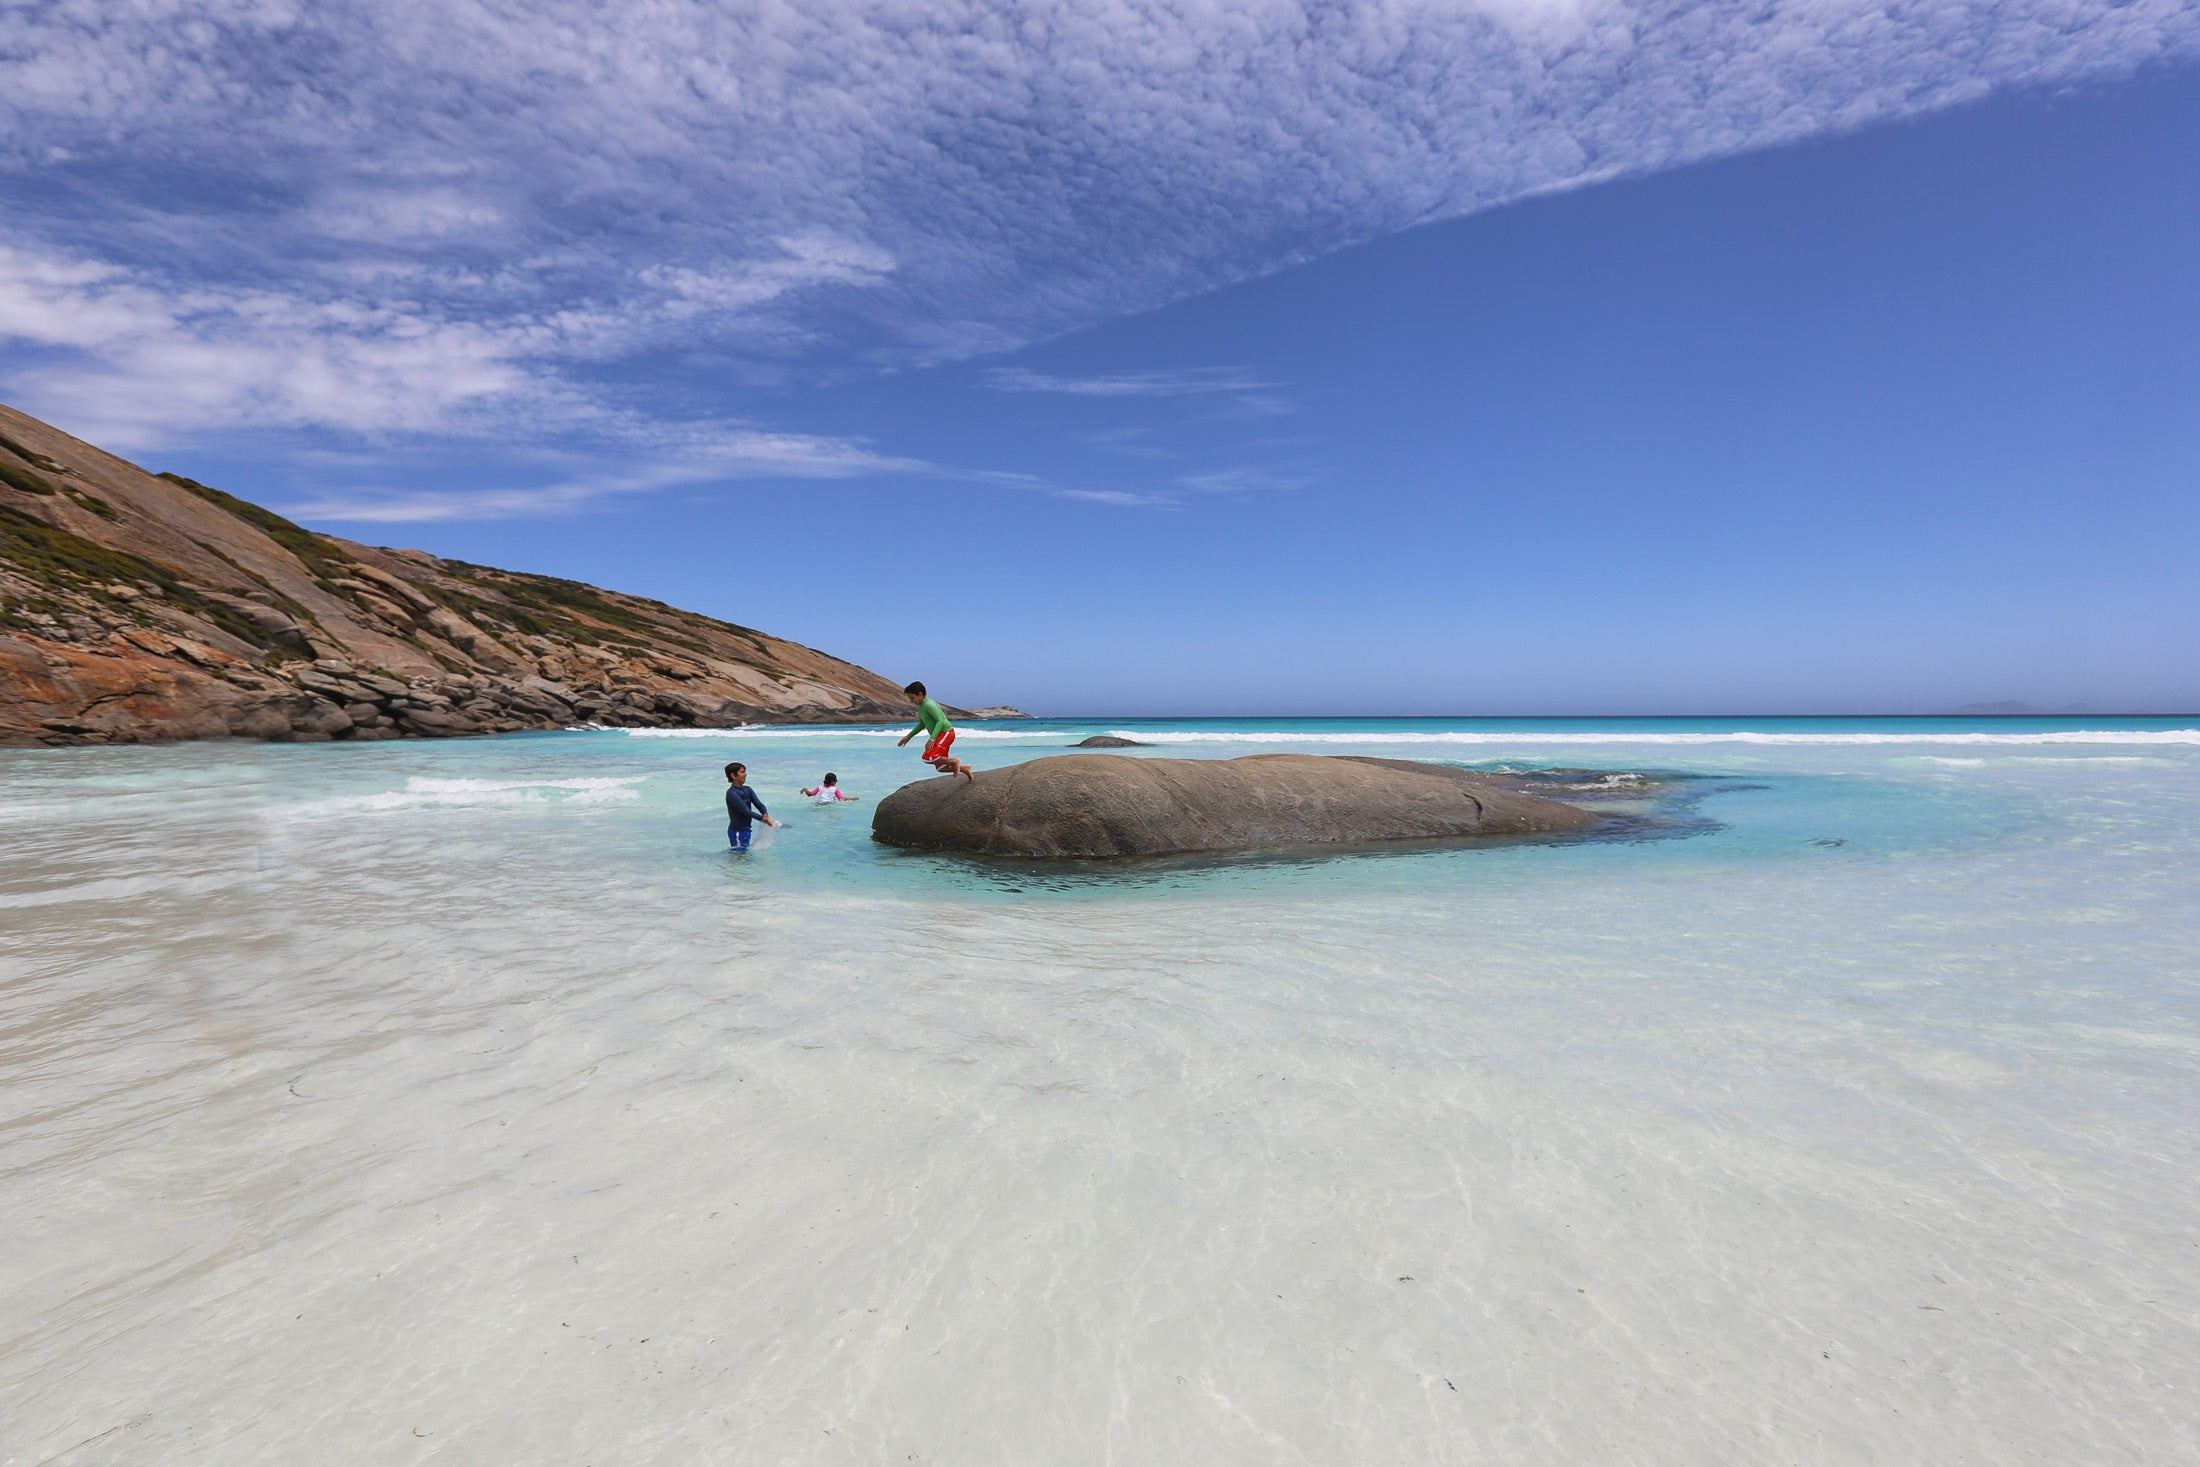 blue waters and a rock for kids to jump off - Esperance beaches at its best